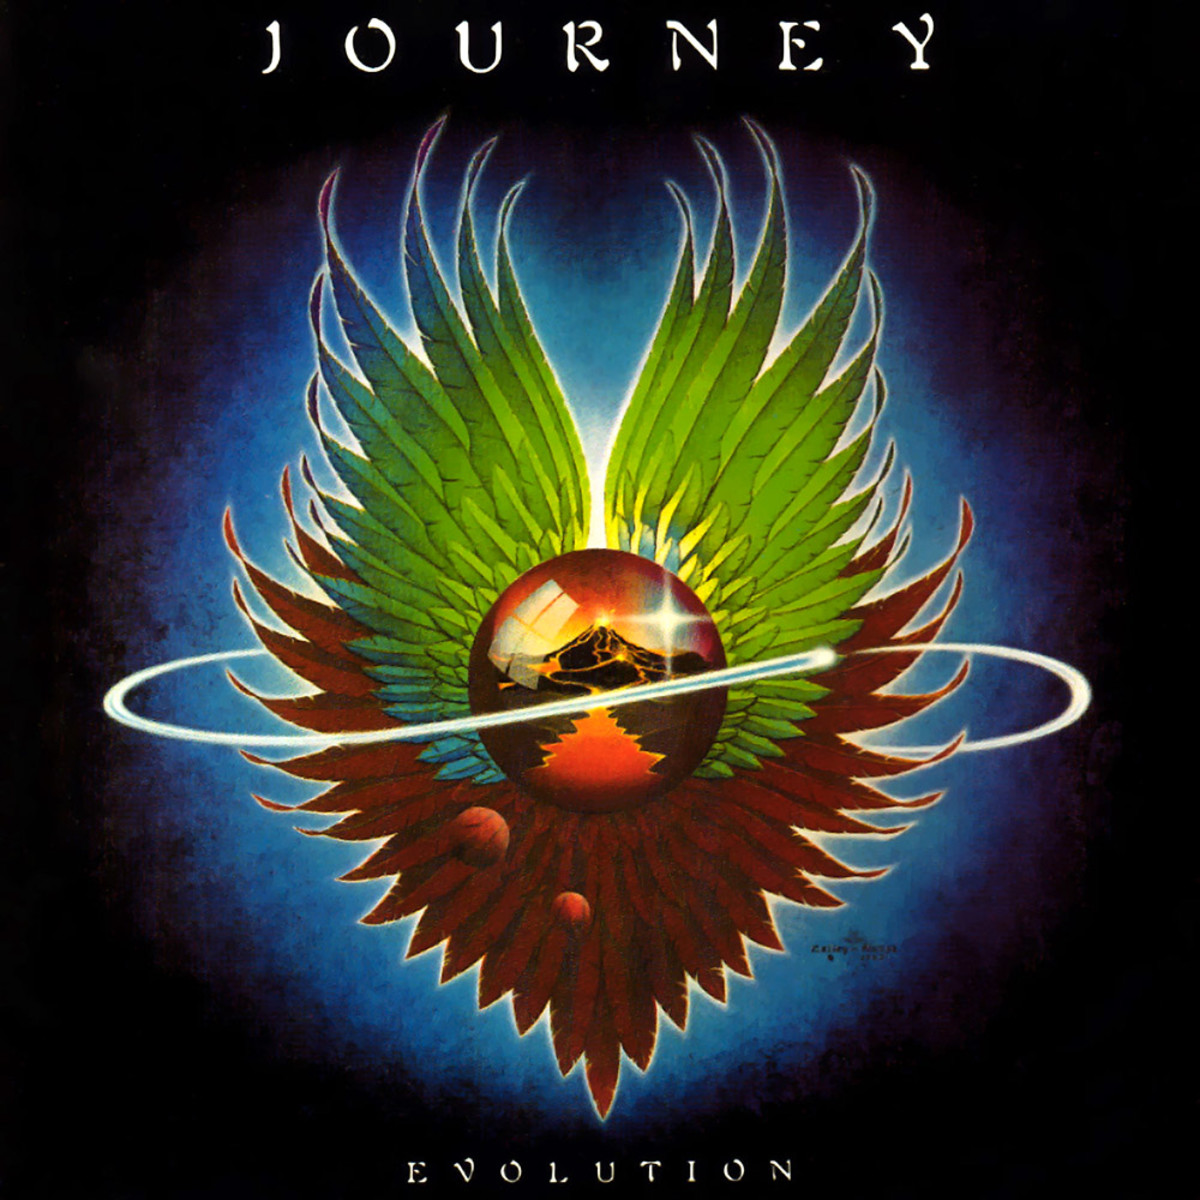 "Journey ""Evolution"" Columbia Records FC 35797 12"" LP Vinyl Record US Pressing (1979)  Album Cover Art by Alton Kelley & Stanley Mouse"